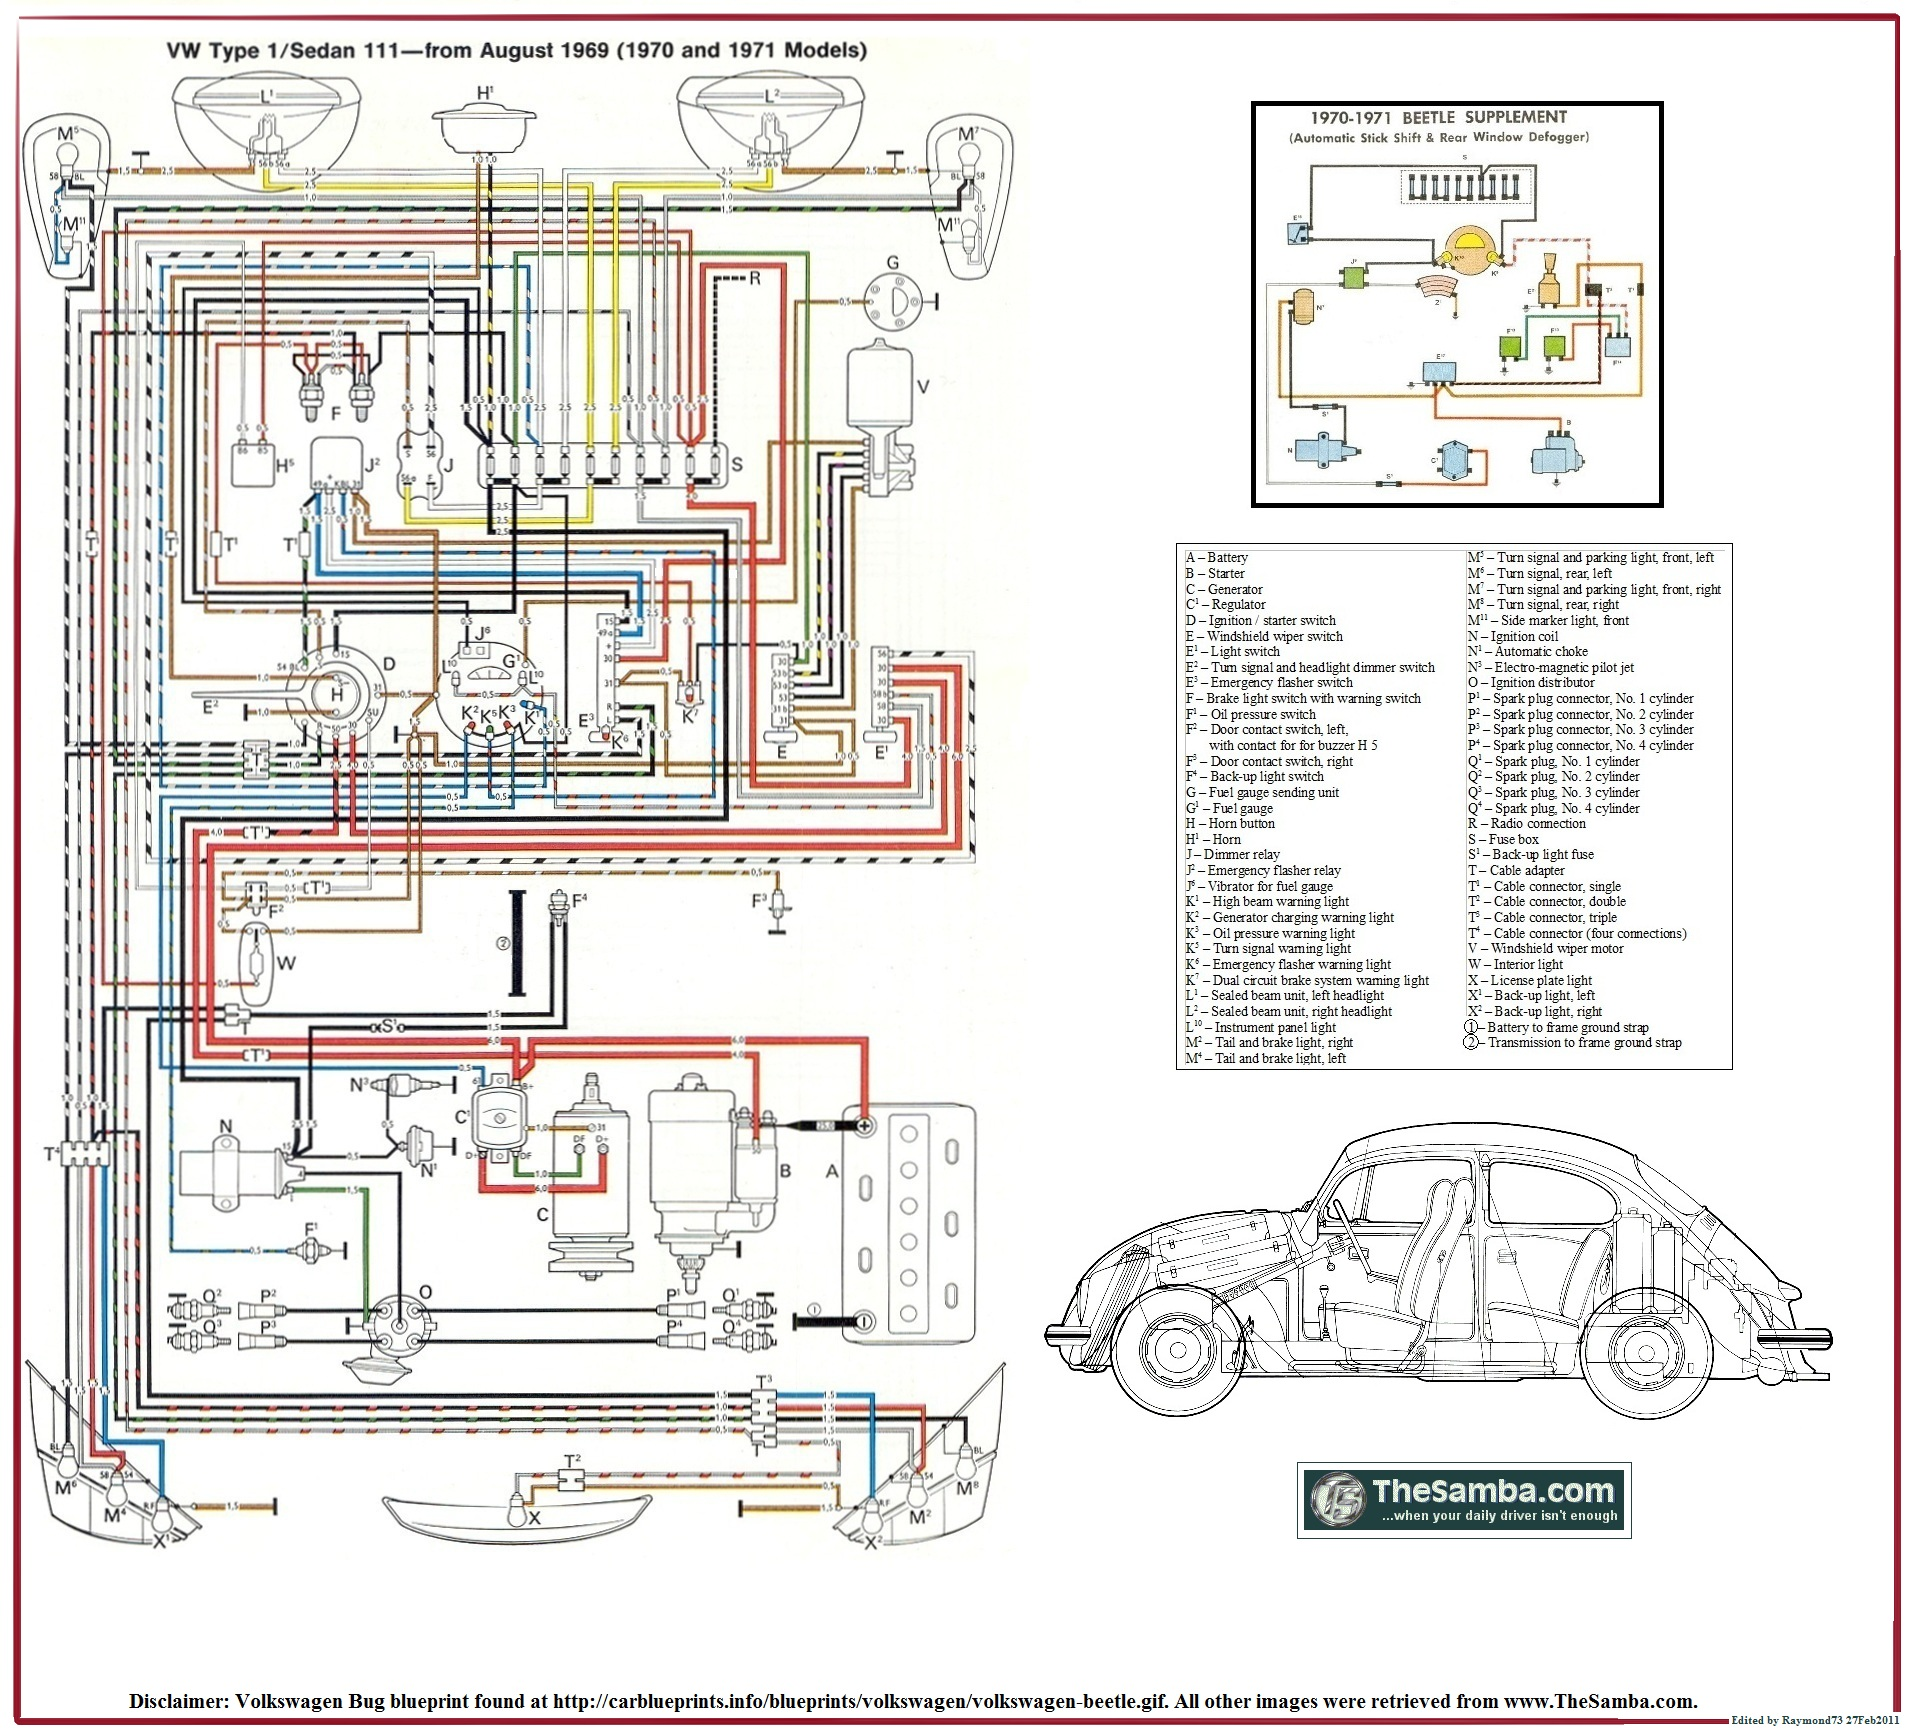 1970_VW_Type_1_Poster thesamba com beetle late model super 1968 up view topic vw beetle wiring diagram at mr168.co